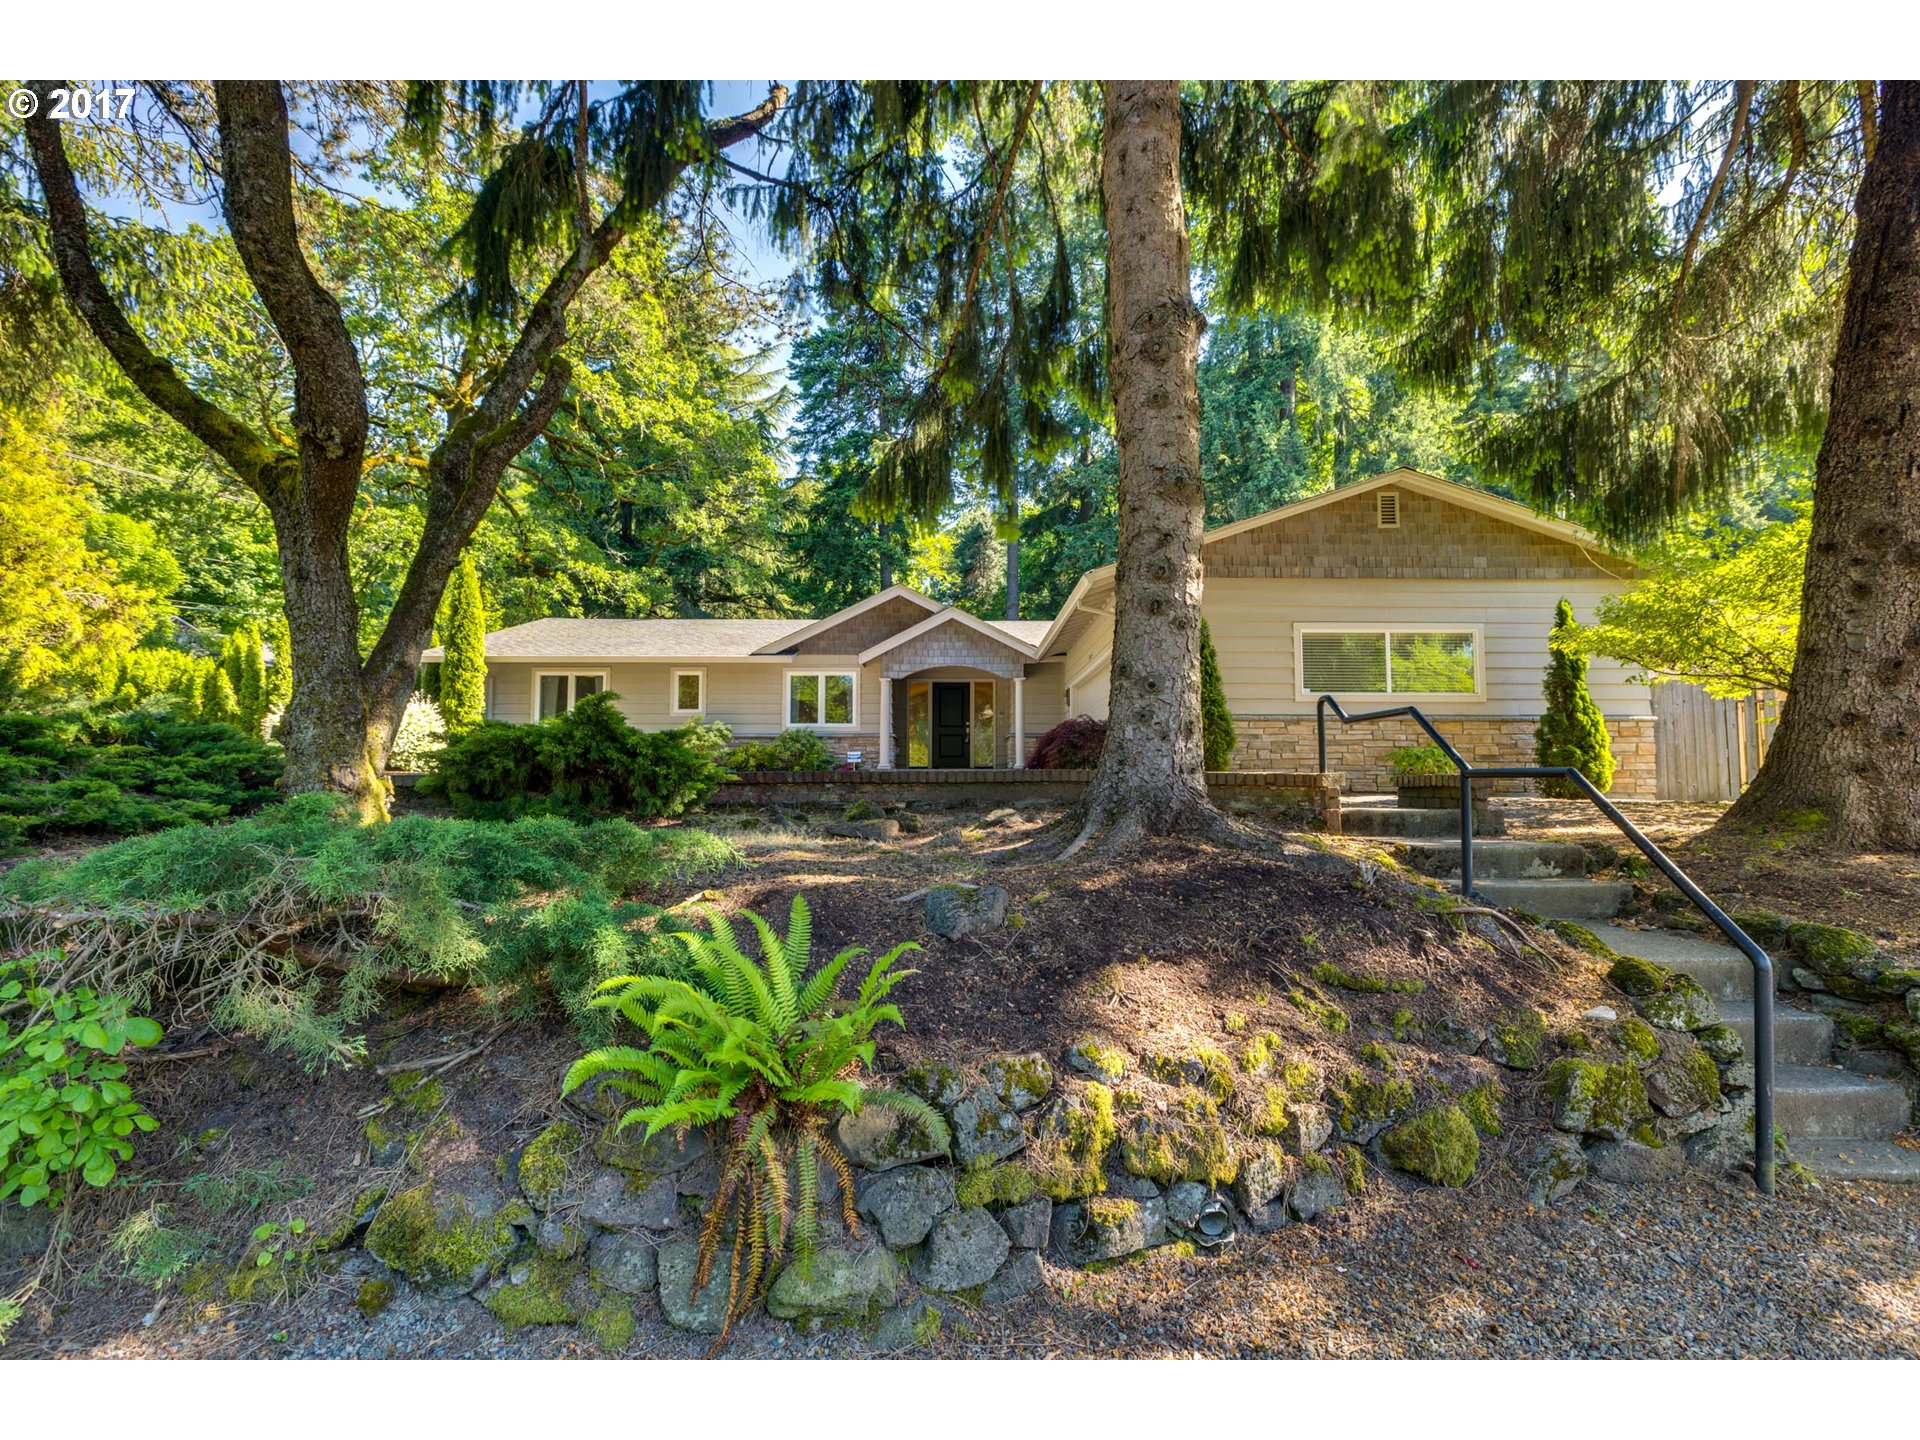 2110 GREENTREE RD, Lake Oswego, OR 97034